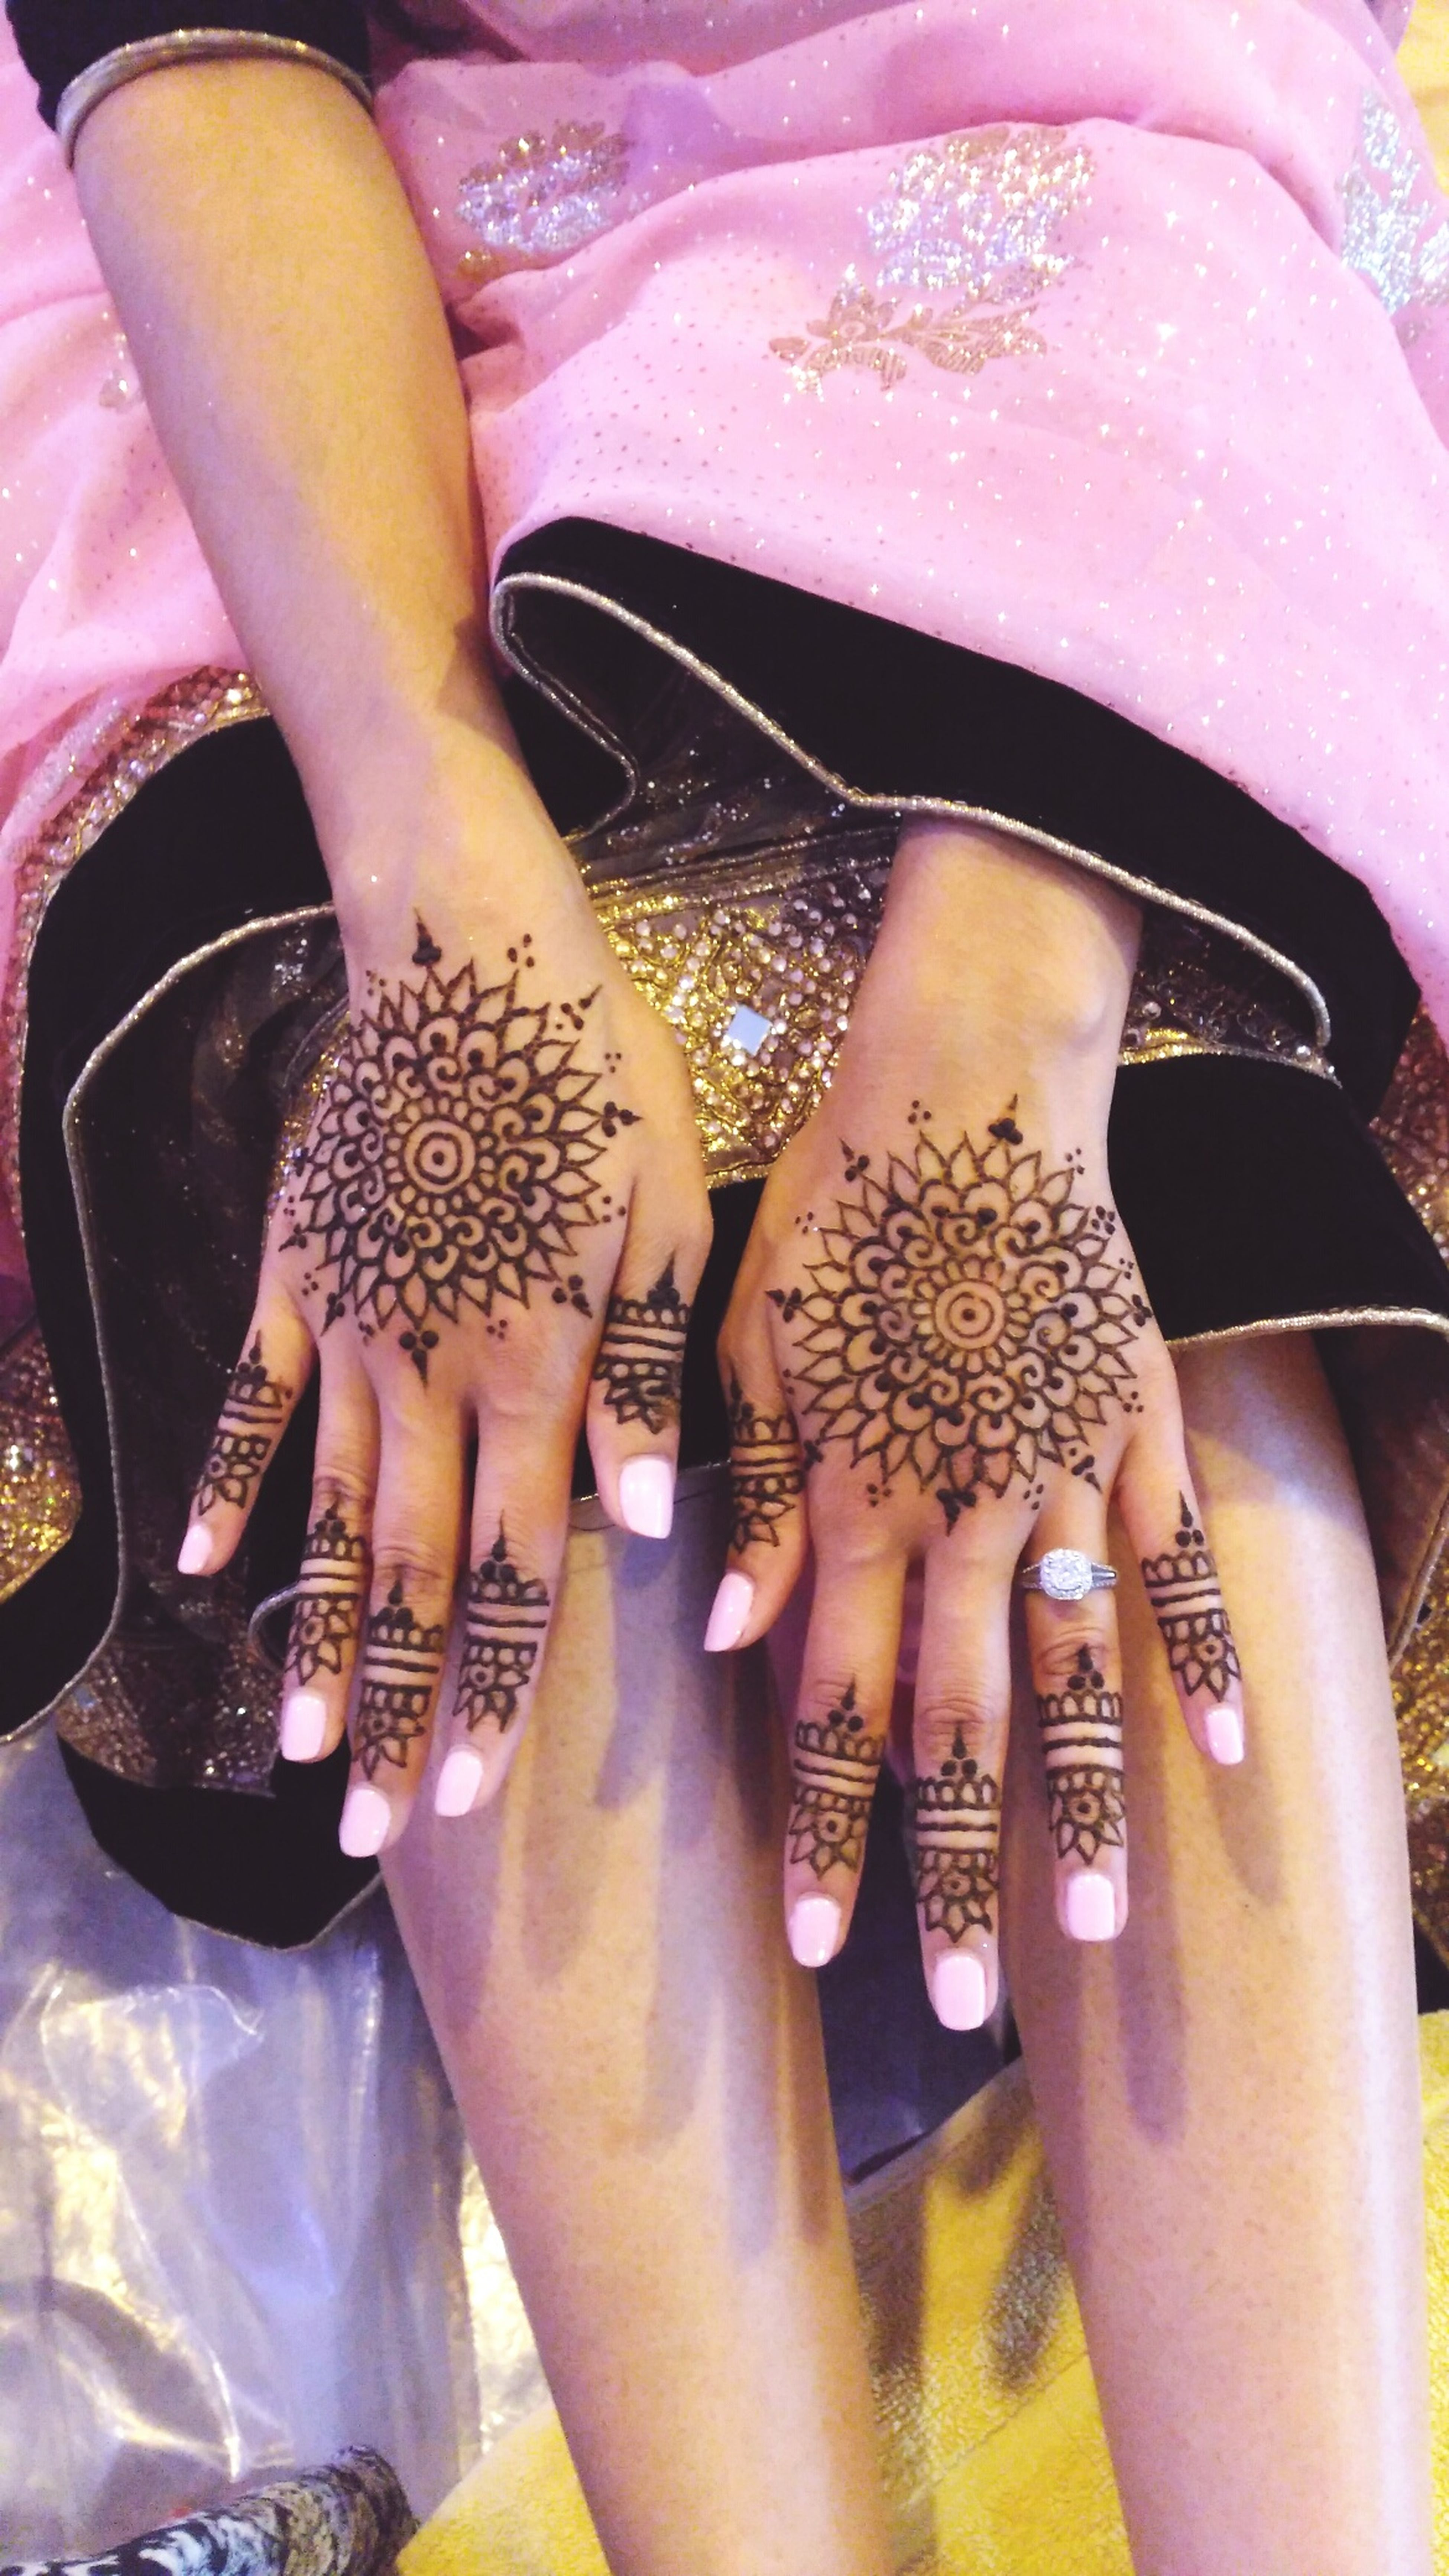 If you are in auckland and would like to get a henna tattoo visit my website hennatattoos.co.nz If You Are In Auckland And Would Like To Get A Henna Tattoo Visit My Website Hennatattoos.co.nzhenna Henna Tattoo Henna Art Henna Artist Mehendi Mehndi Wedding Indian Wedding Bride Bridal Indian Design